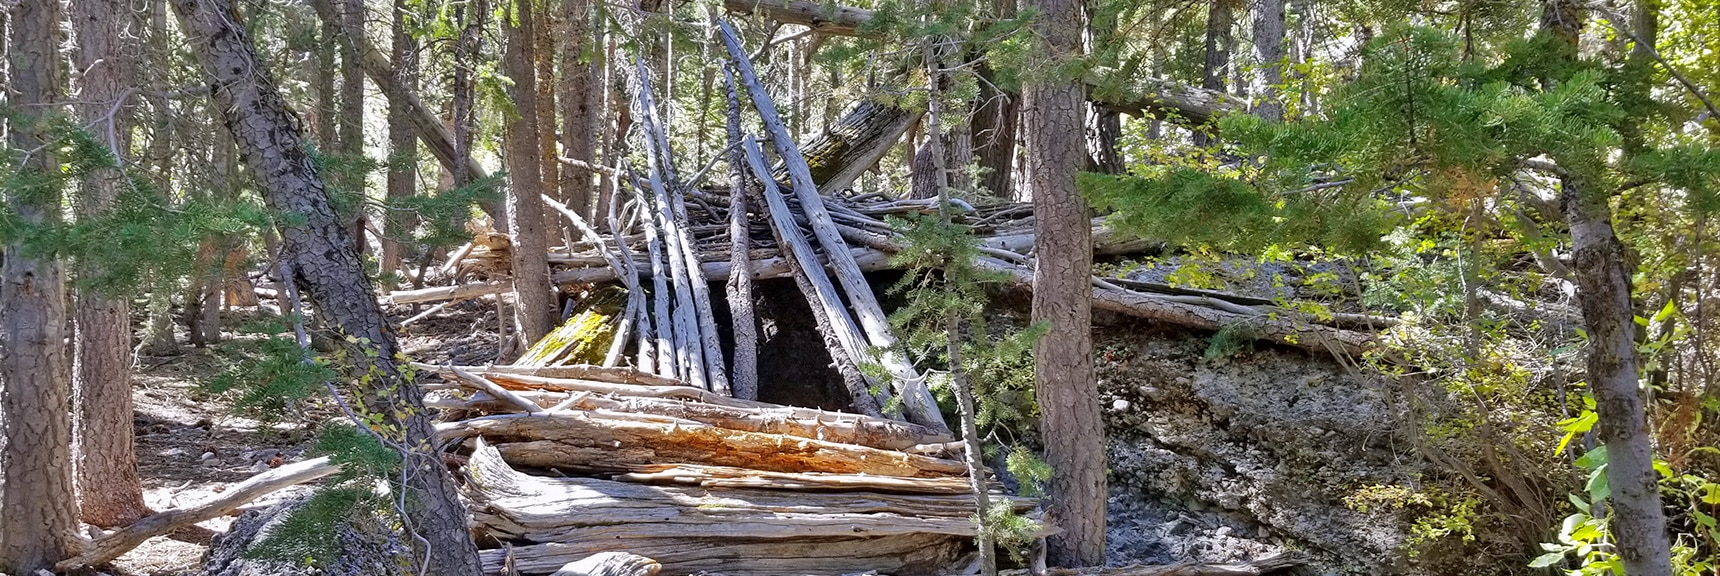 Makeshift Shelter In Lower Cougar Ridge Trail Forest | Mummy Springs Loop | Mt. Charleston Wilderness | Spring Mountains, Nevada